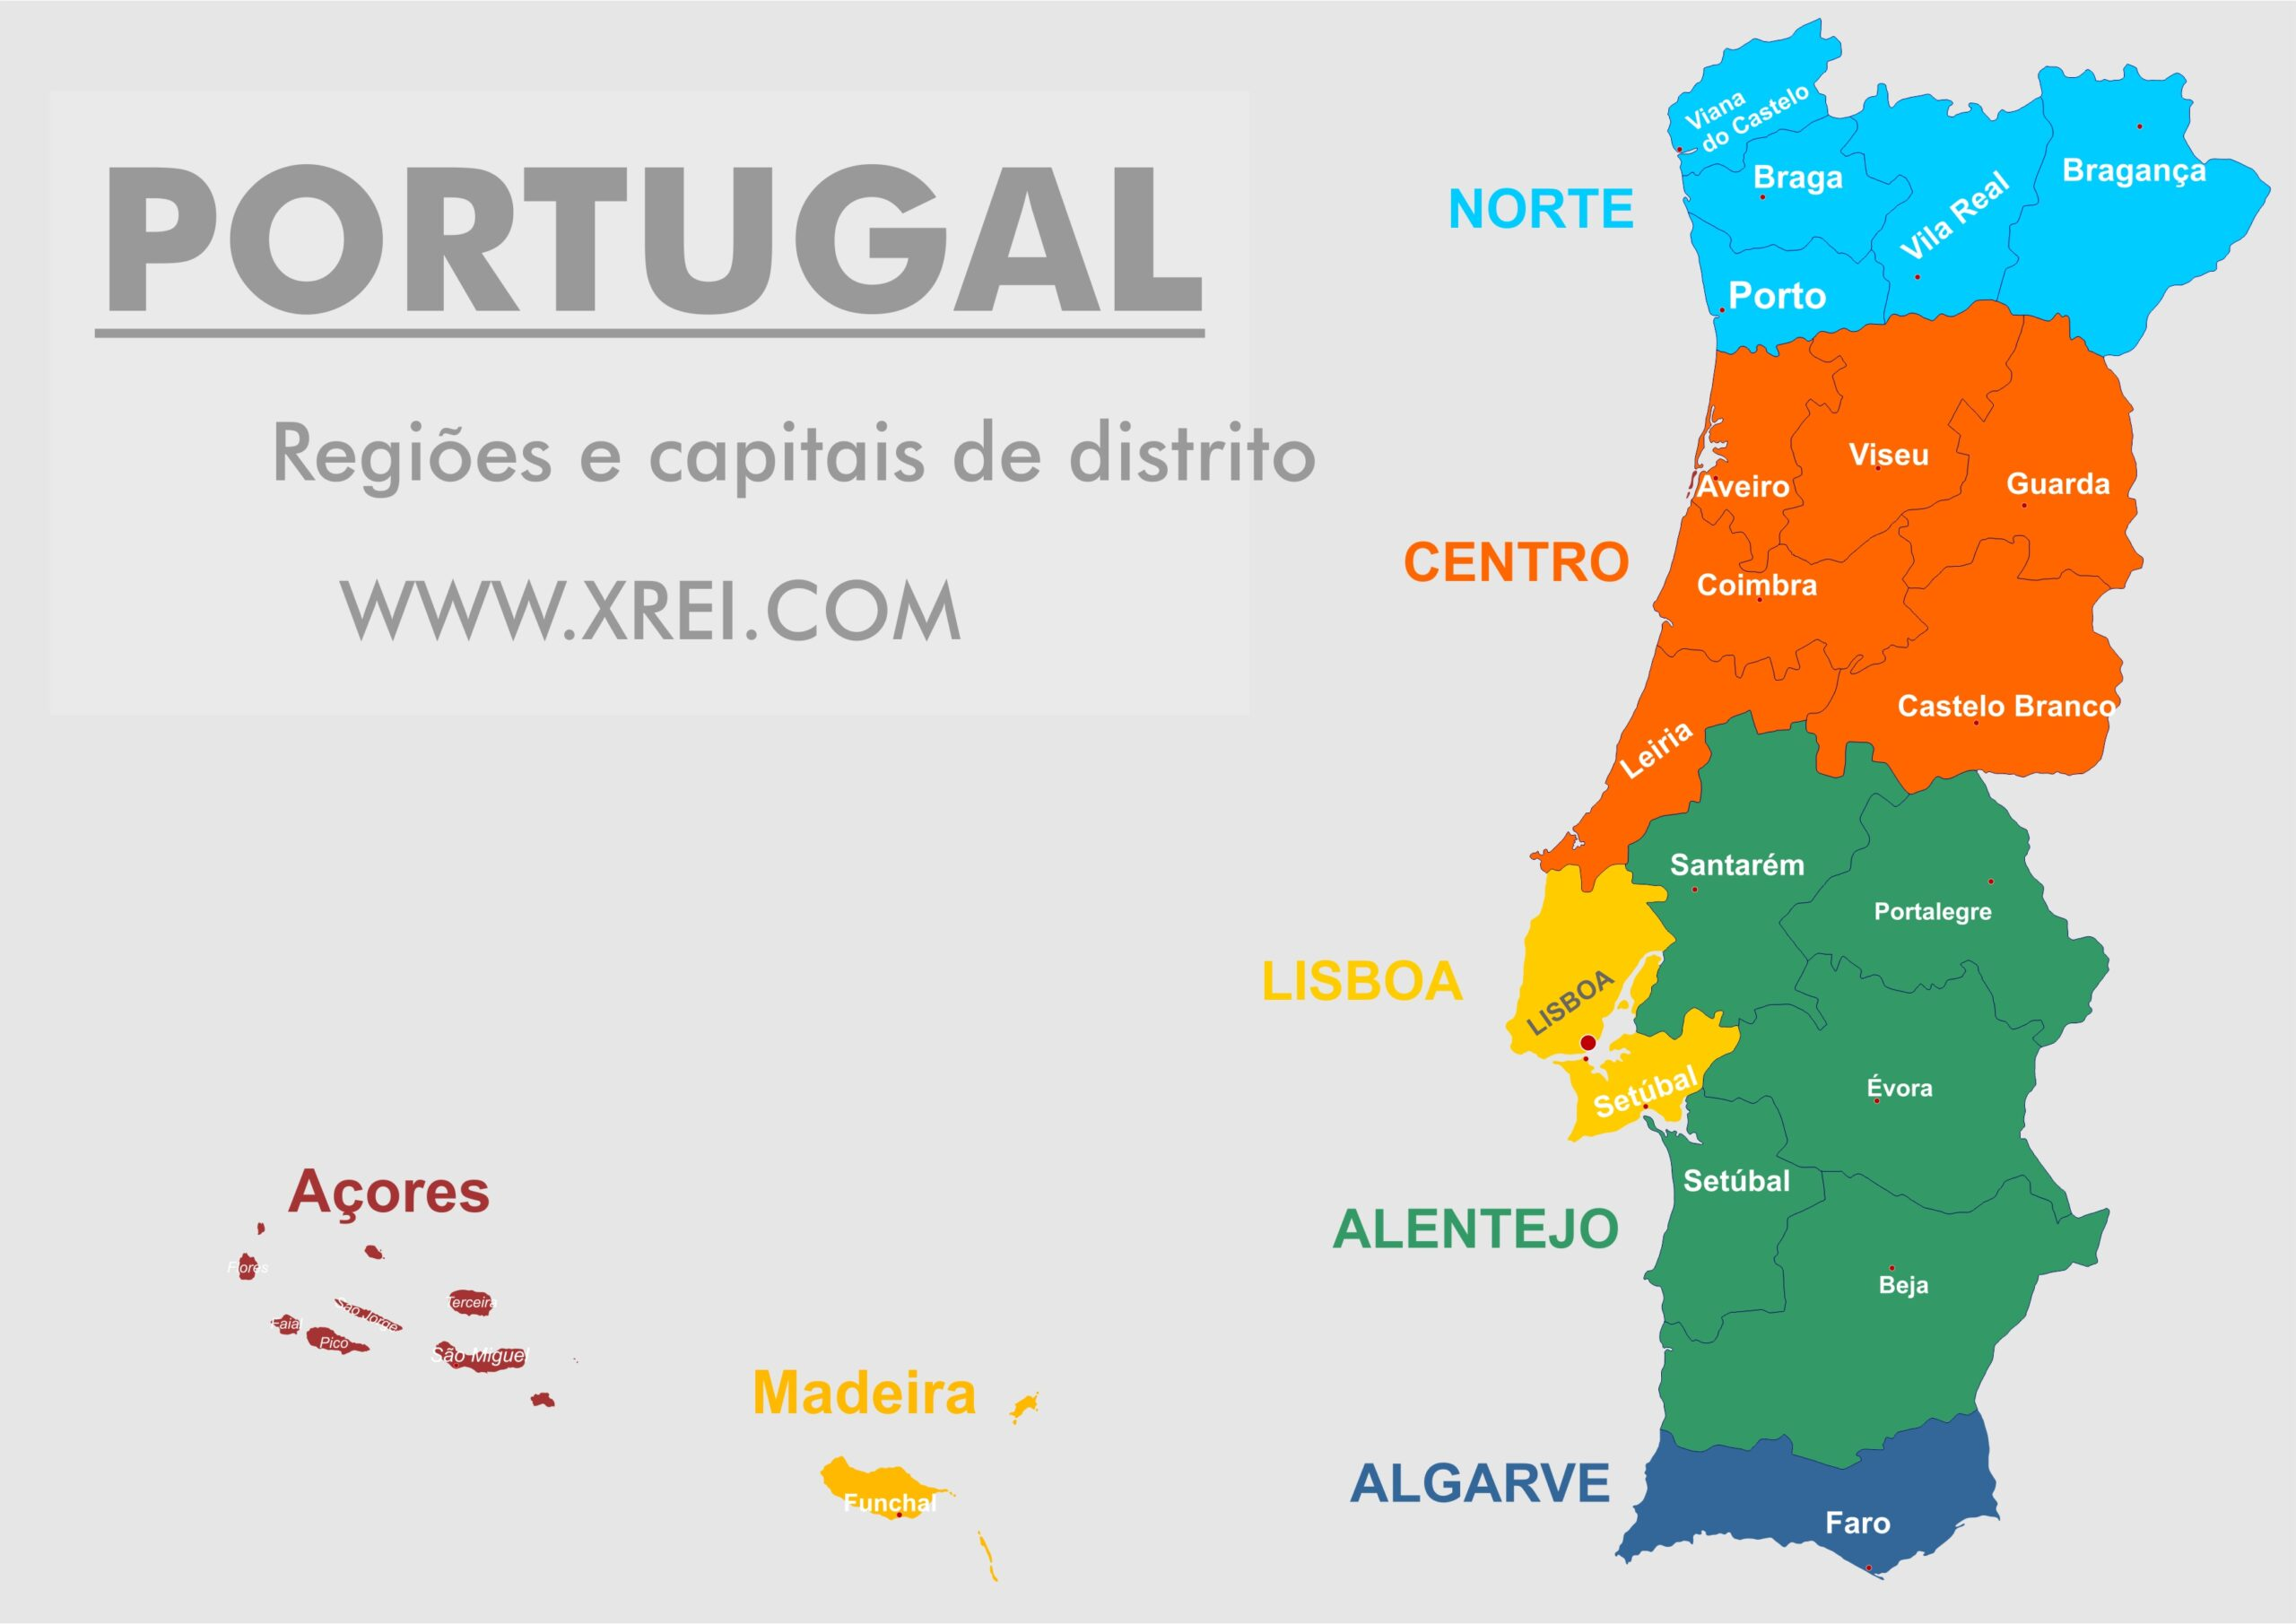 Portugal consists of five regions on the continent: the northern region, the central region, the Lisbon and Tagus Valley region, the Alentejo region and the Algarve region. And two autonomous regions in the Azores and Madeira archipelago